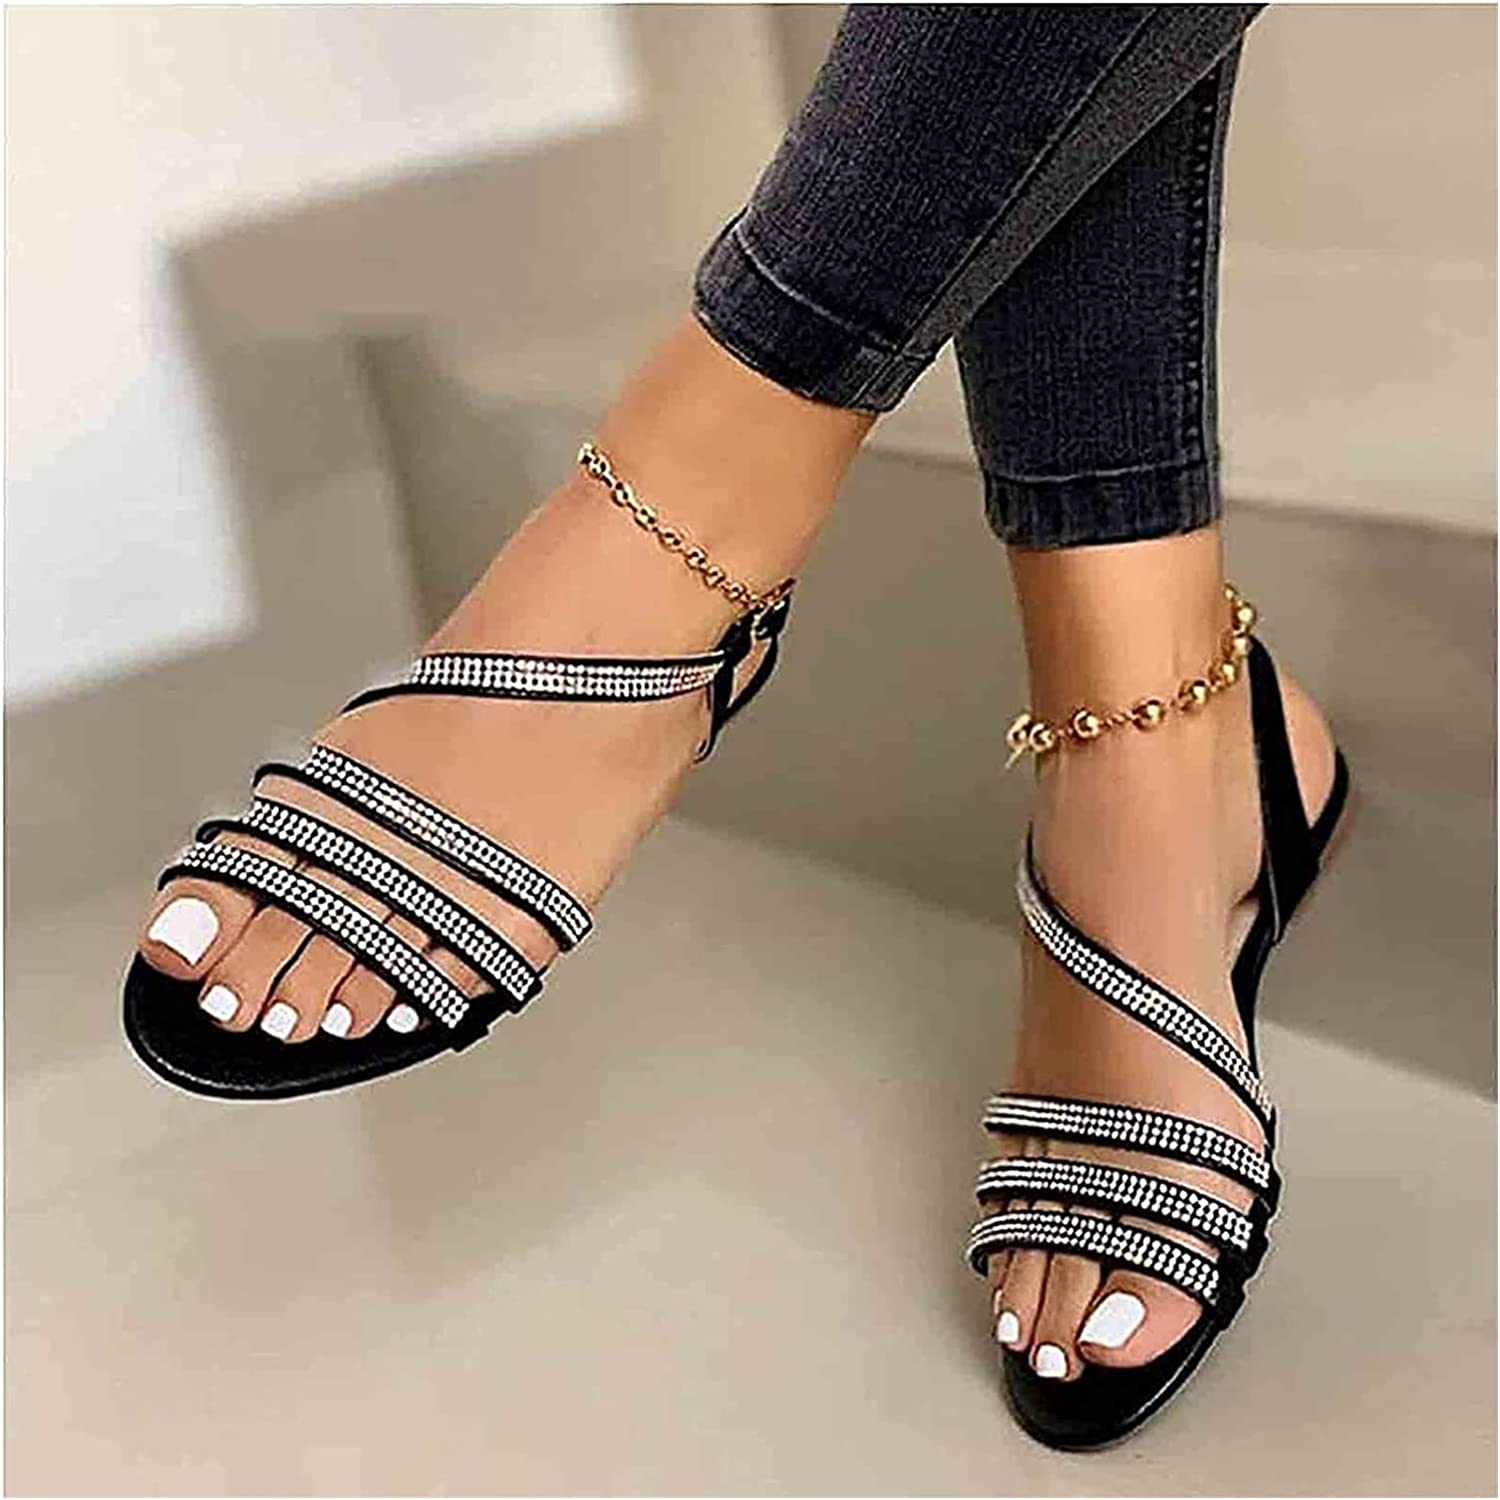 Women's Open Toe Sandals Flat Summer Rhinestone Flower Bead Beach Flip Flops Anti Slip Slippers Outdoor Crystal Beach Sandals for Vacation (Color : Gold, Size : 37)